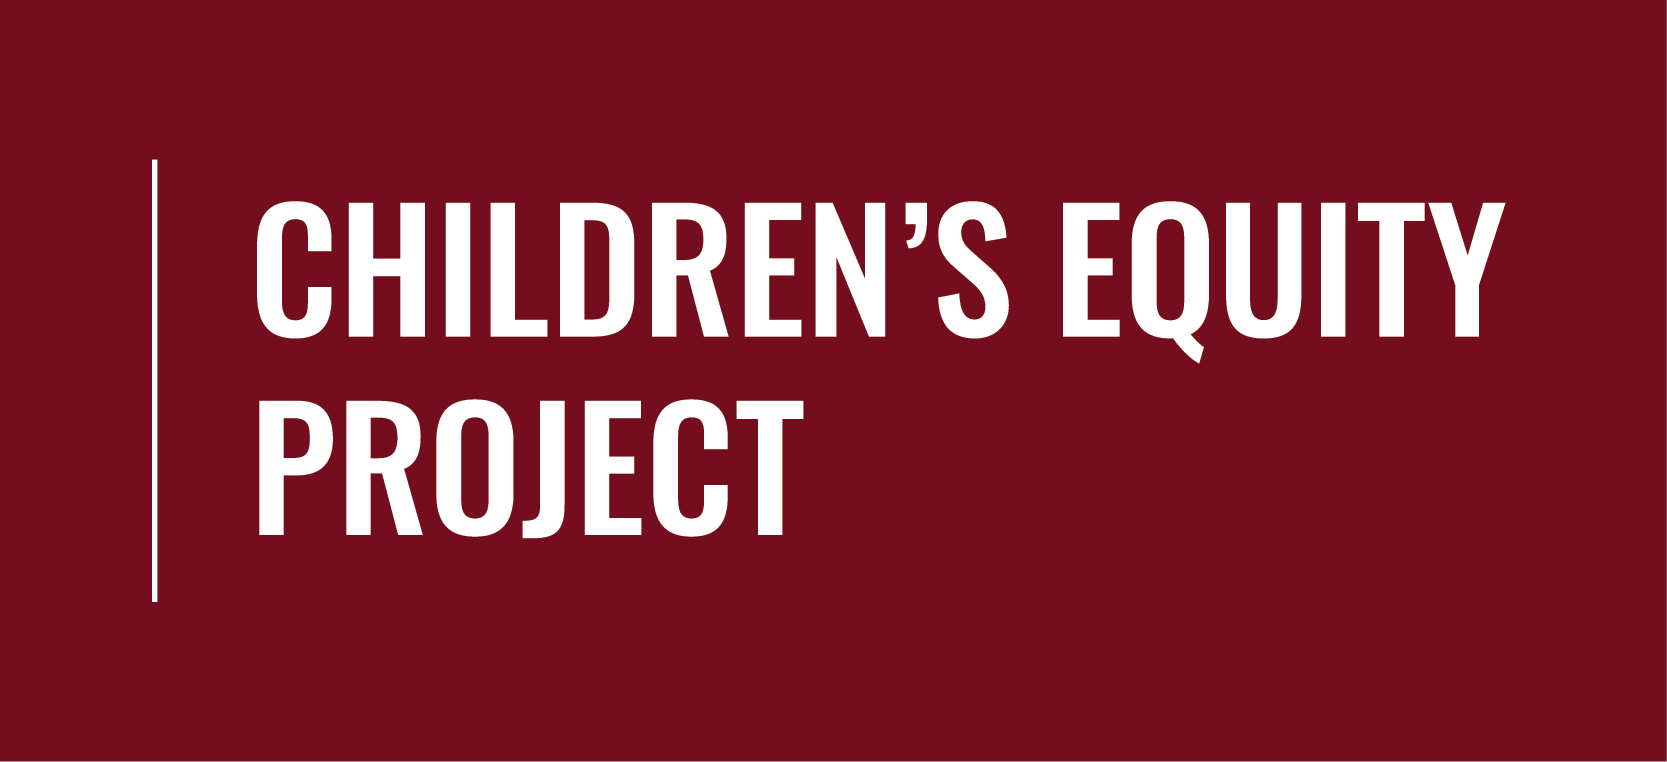 Children's Equity Projecta